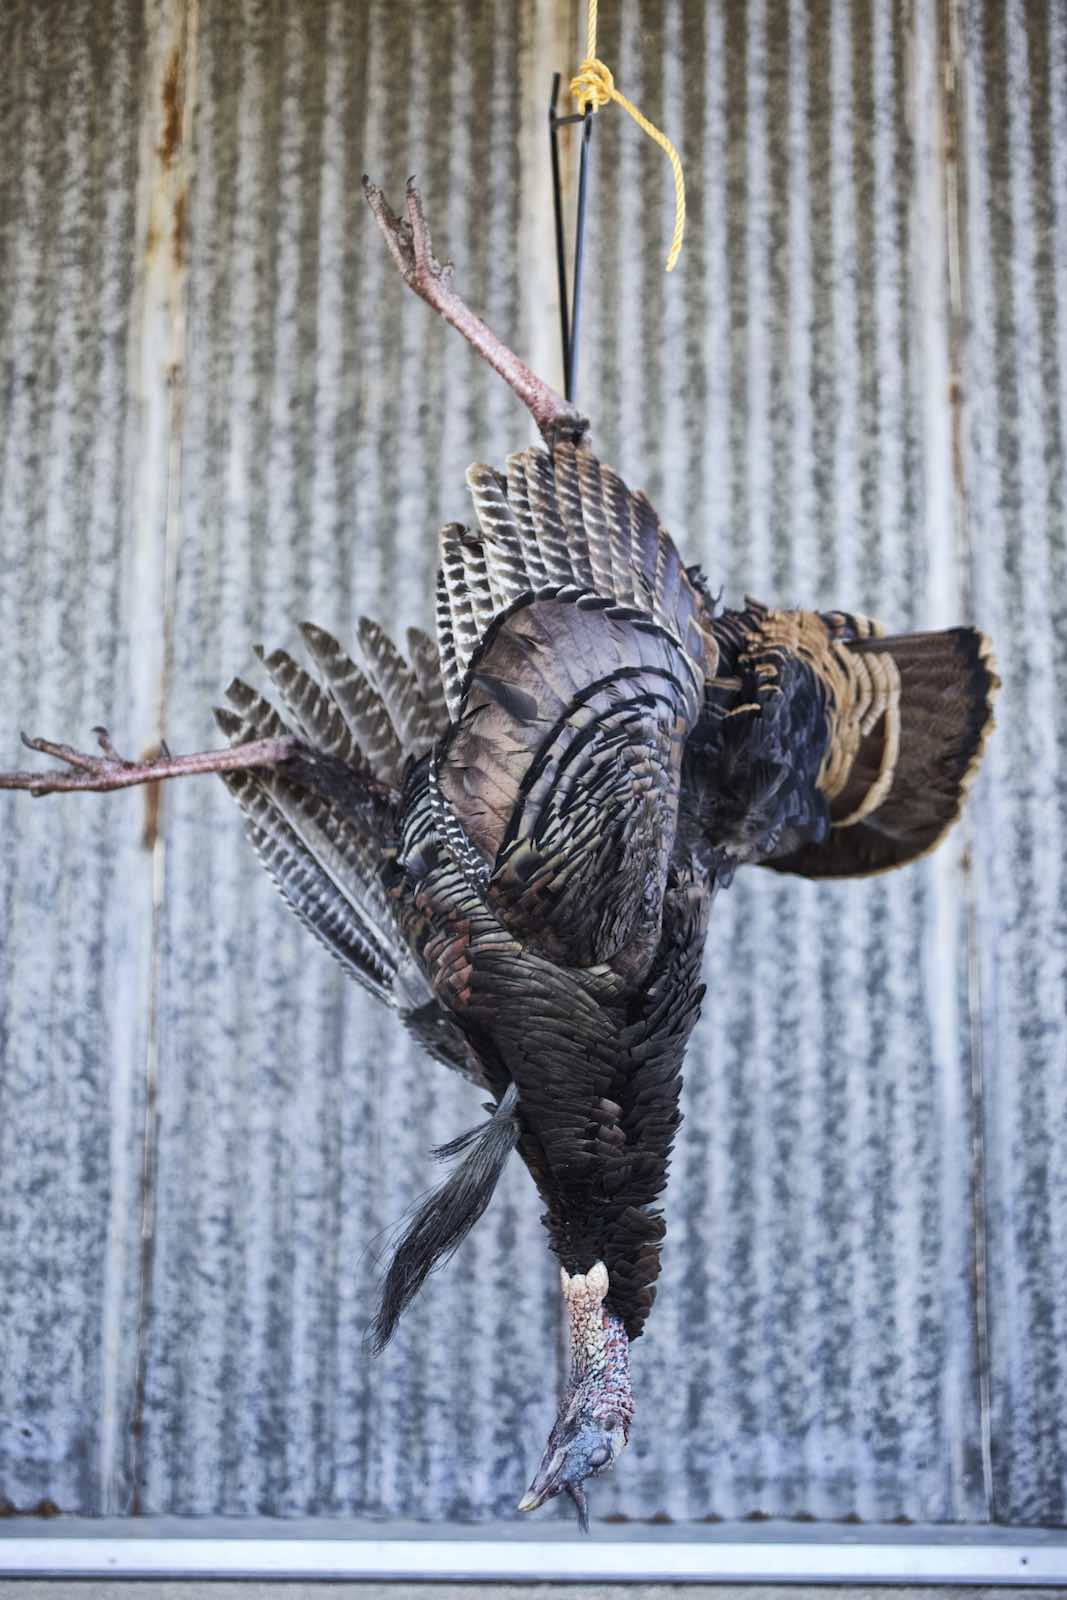 Jody Horton Photography - Turkey hanging by its leg.